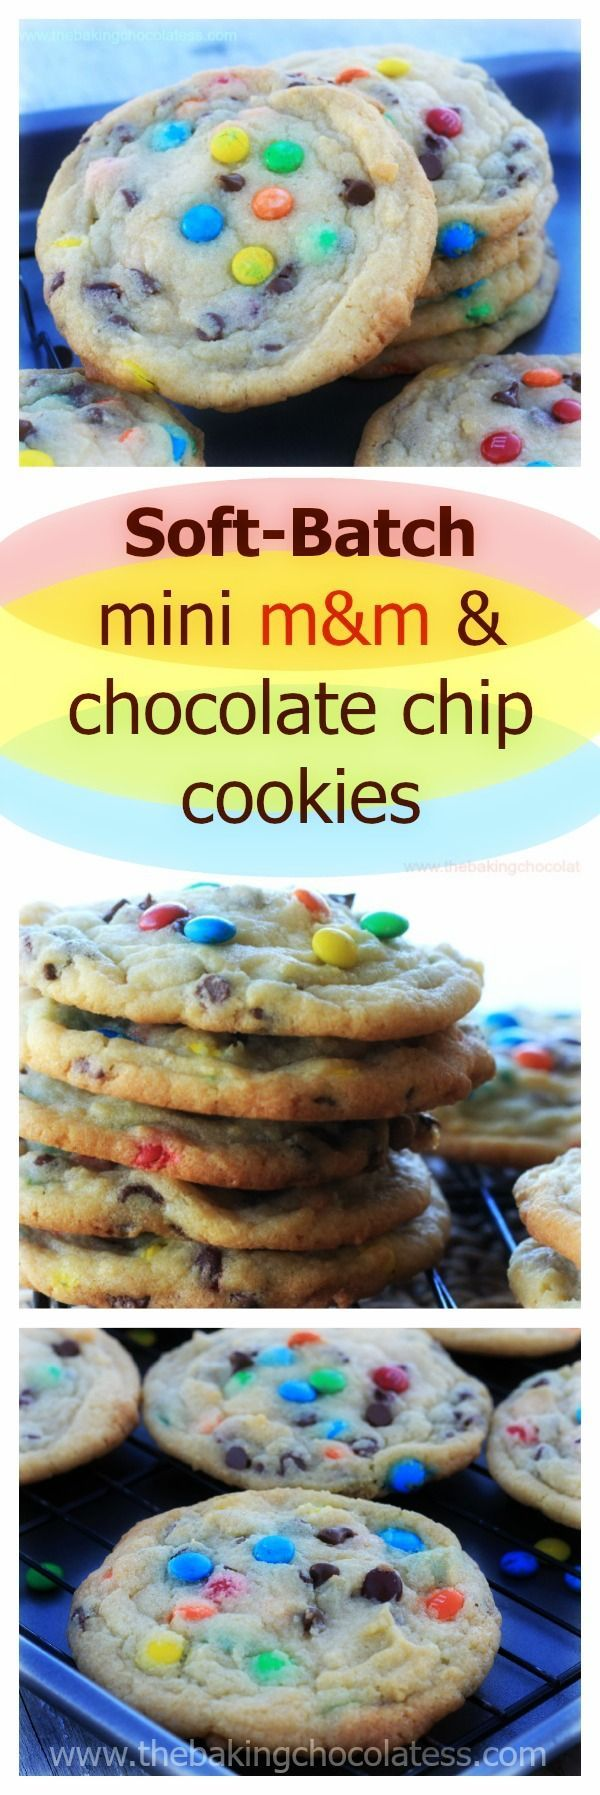 Tate Approved! Soft-Batch Mini M&M & Chocolate Chip Cookies (used combination of butter, coconut oil, and Crisco and also used some white-wheat flour)